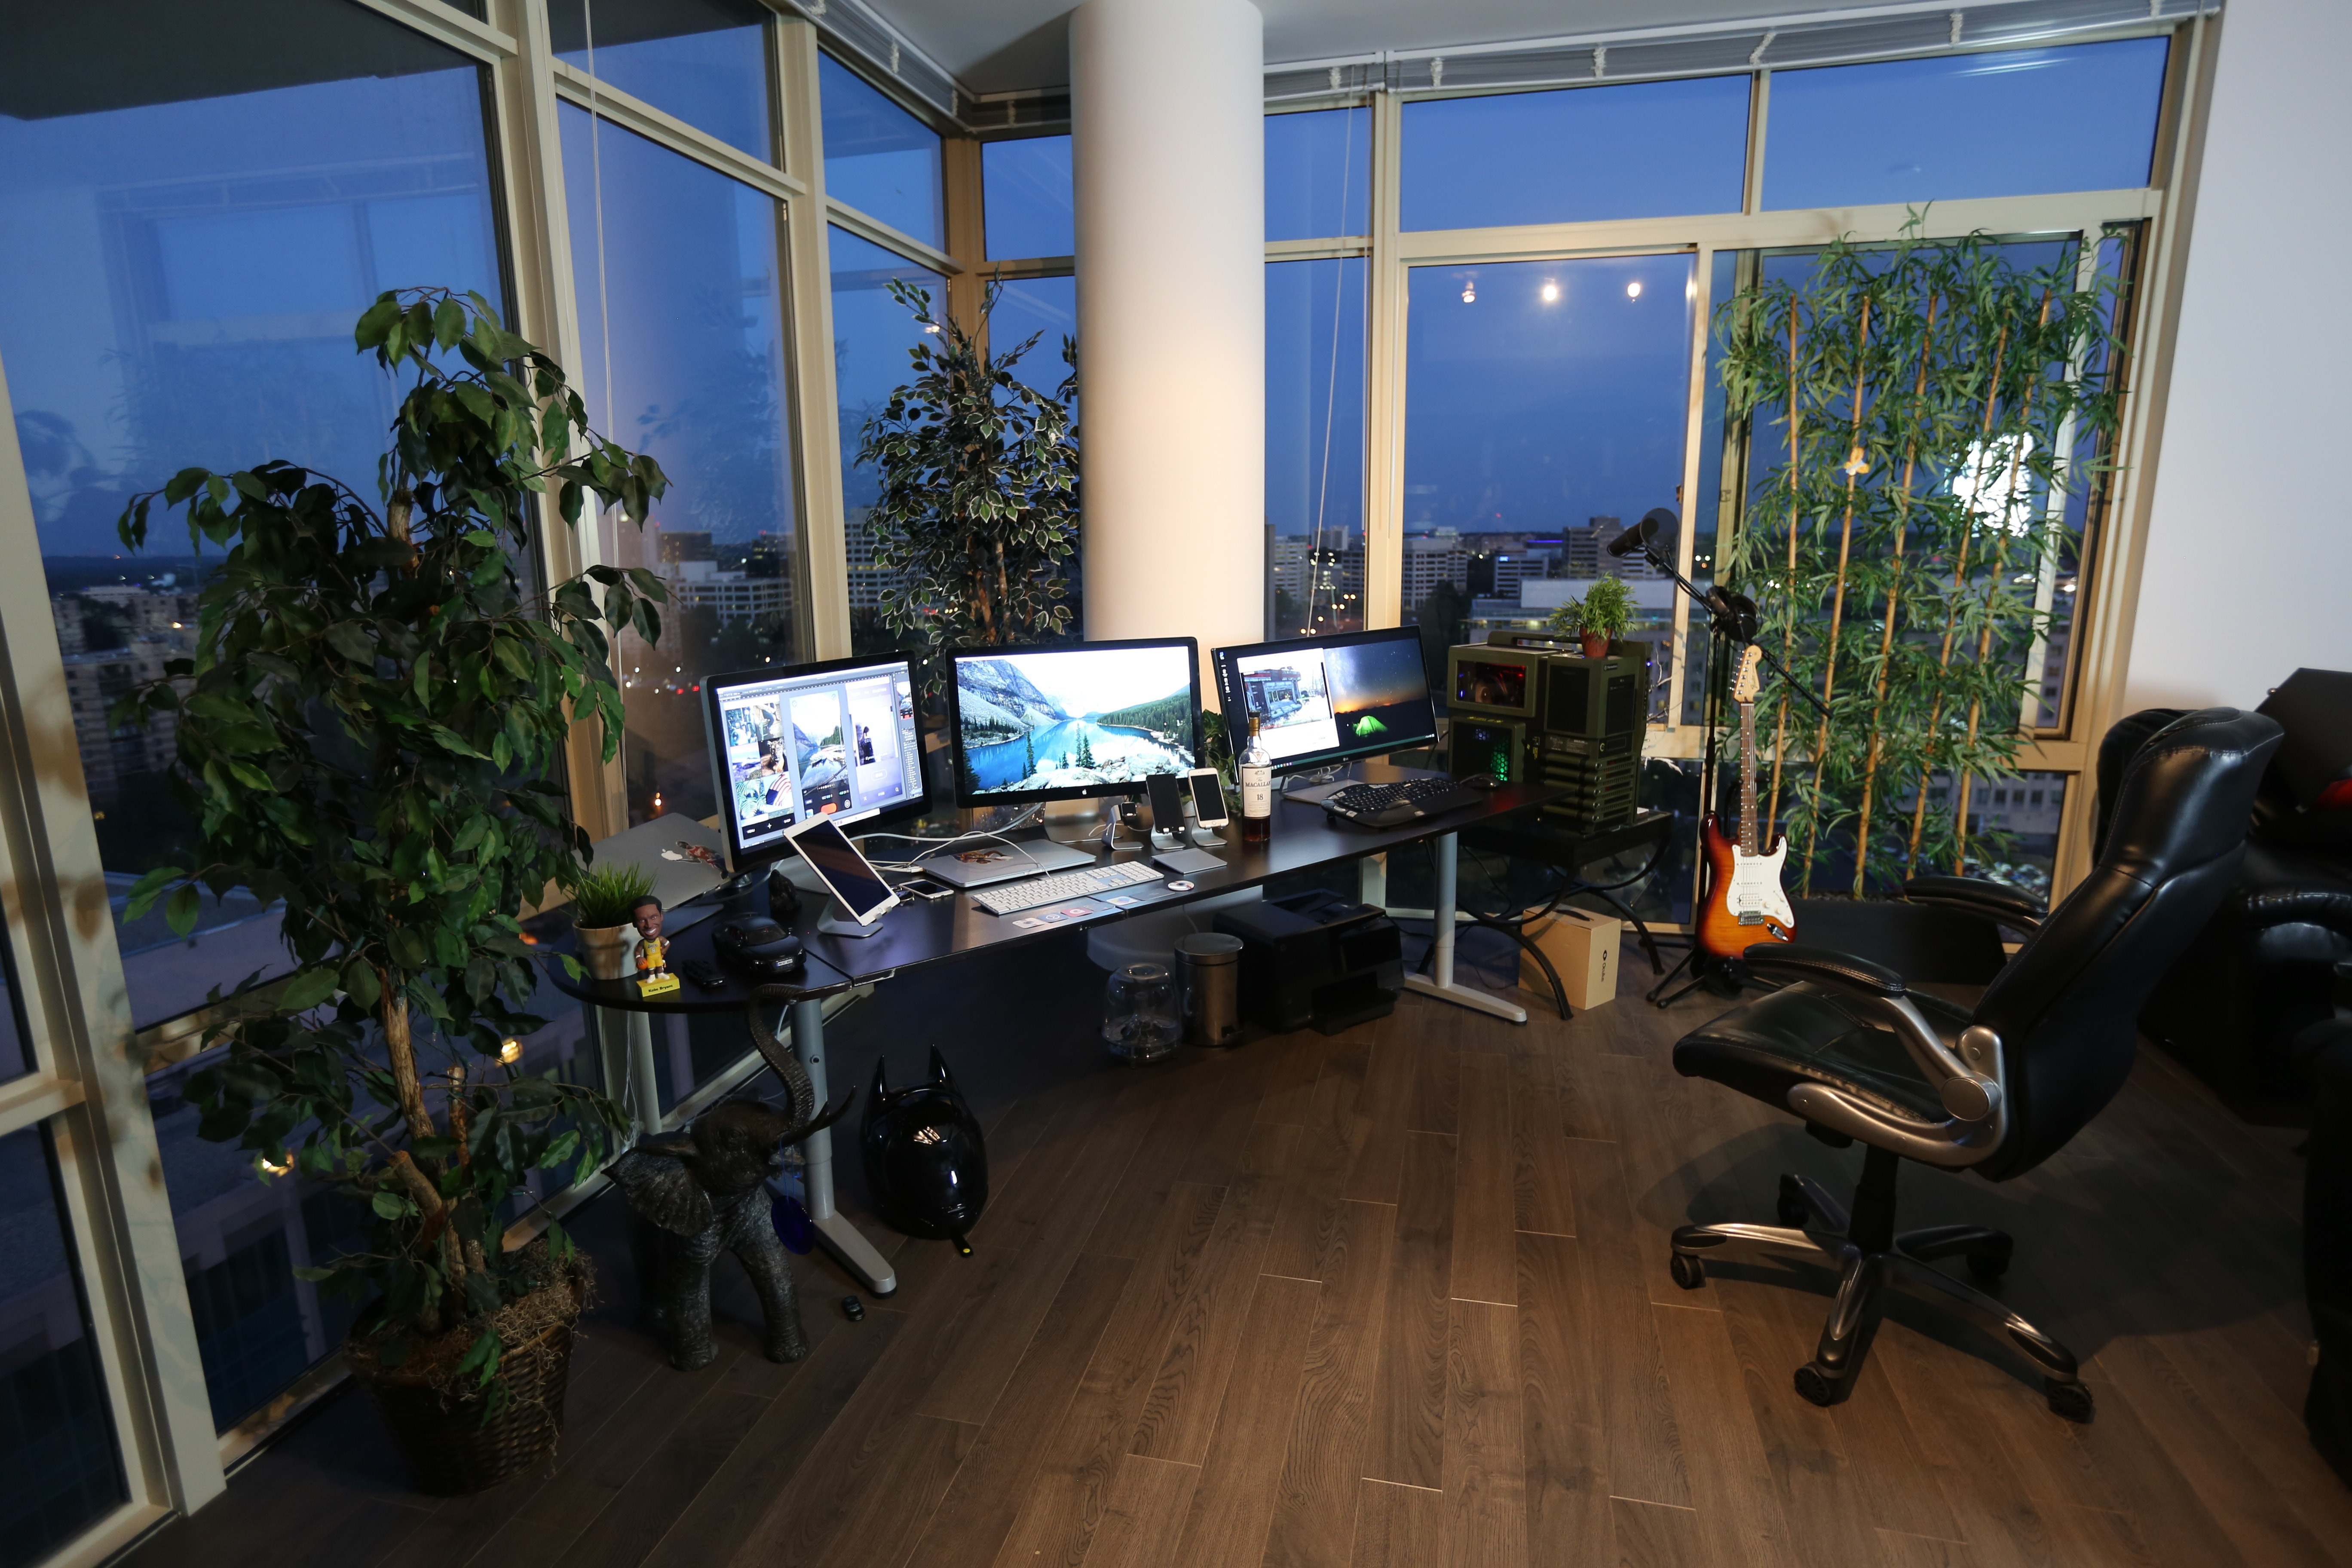 Audio Video System & Home Office Setup